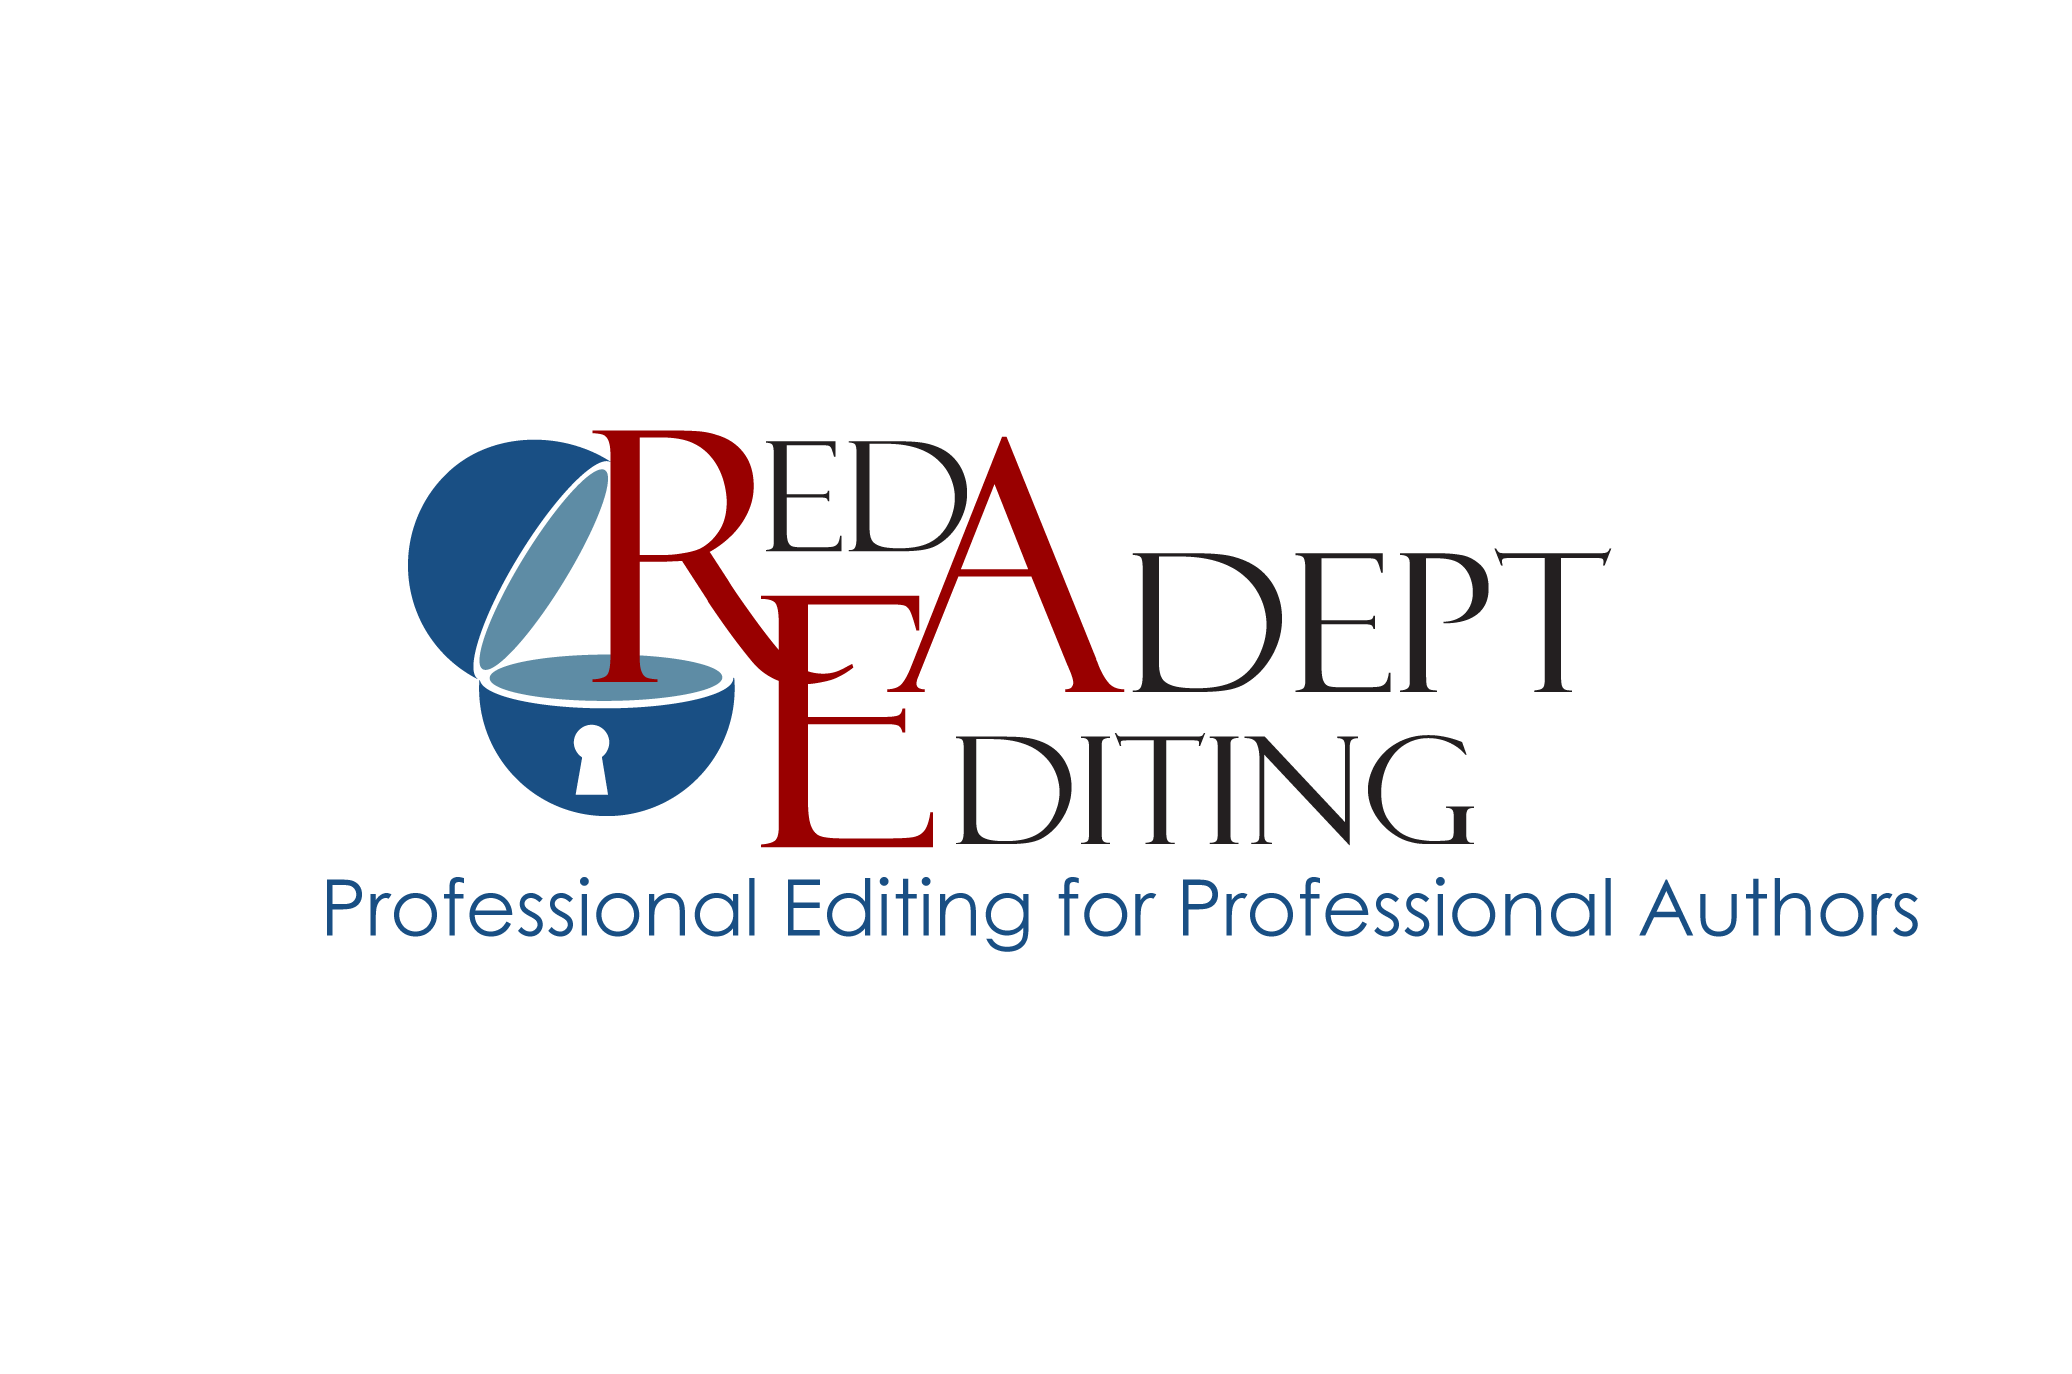 Professional Editing for Professional Authors